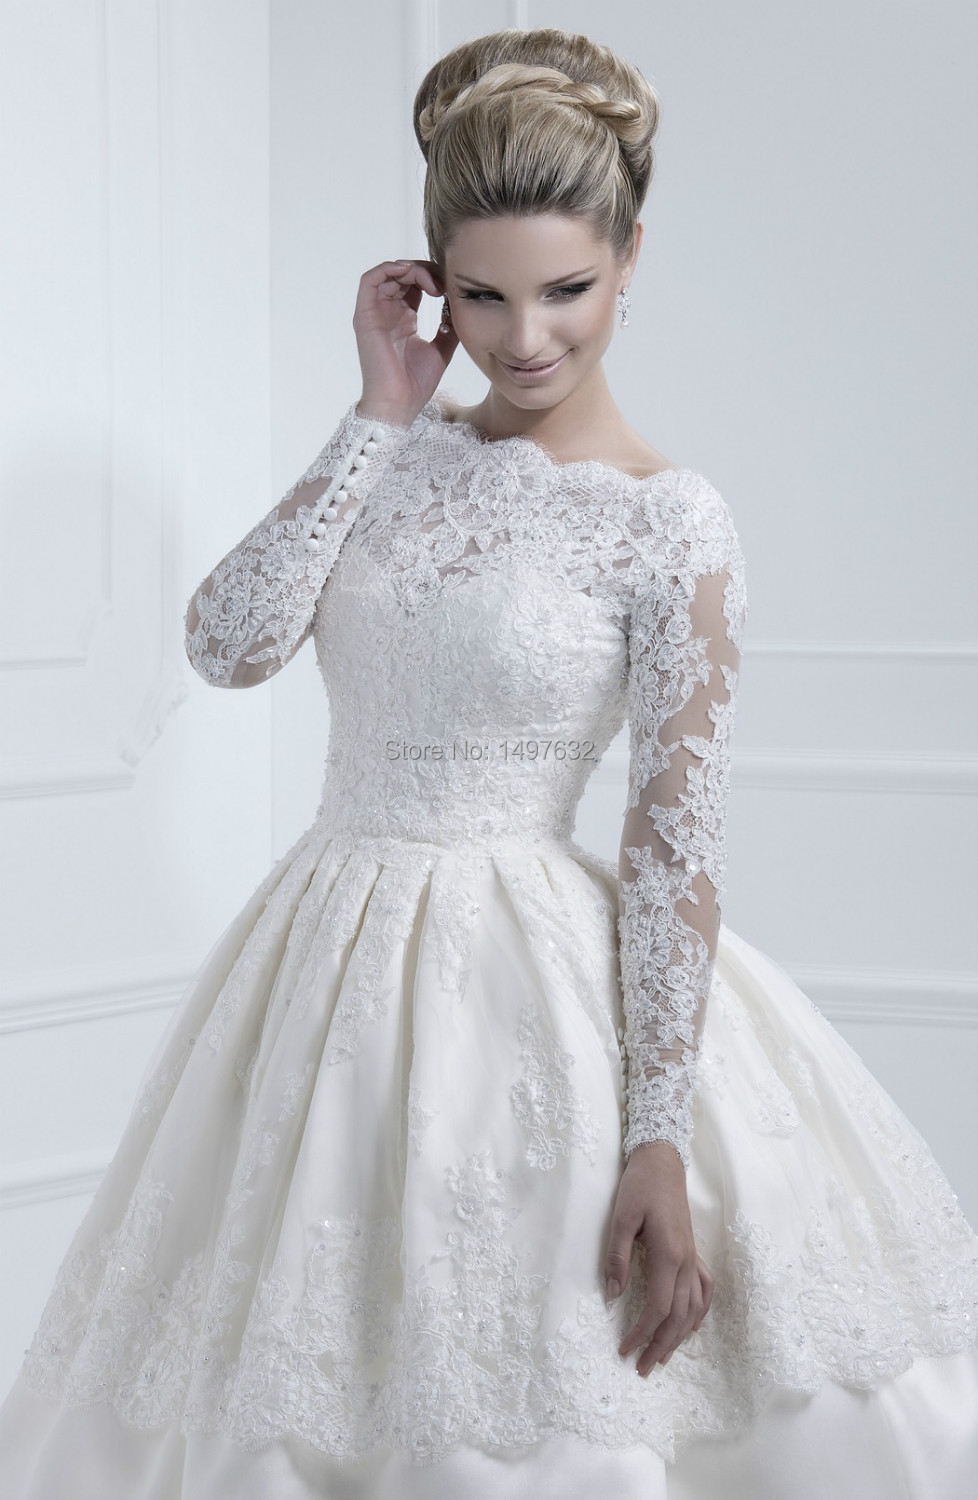 Wedding dresses uk cheap vintage mini bridal for Budget wedding dresses uk